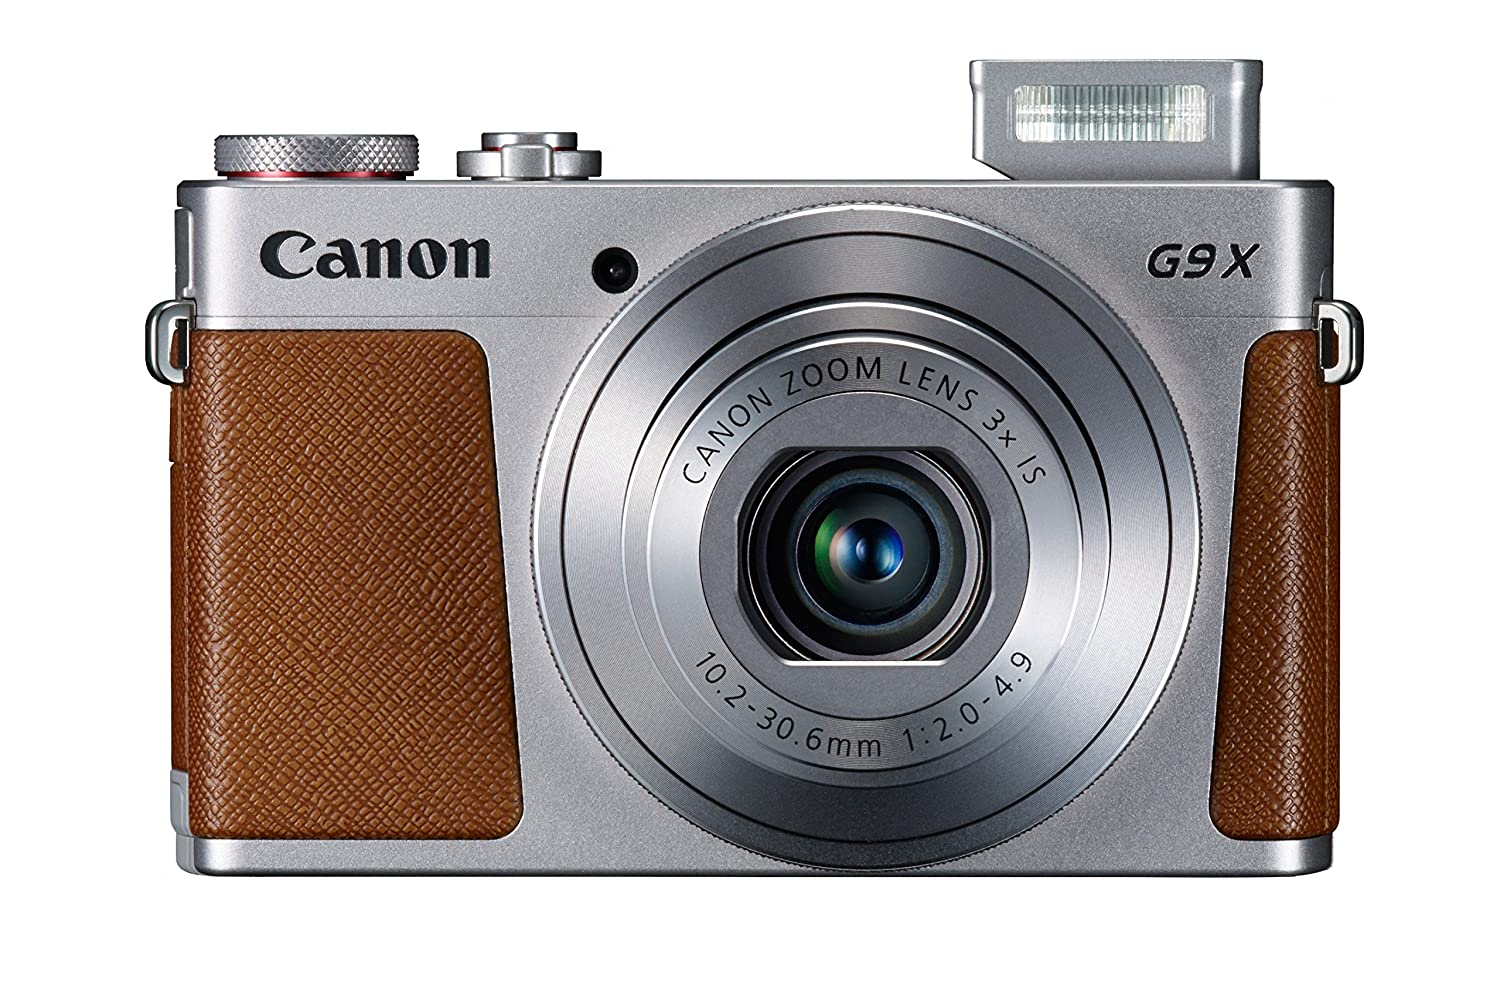 Amazon.com : Canon PowerShot G9 X Digital Camera with 3x Optical Zoom,  Built-in Wi-Fi and 3 inch LCD touch panel (Silver) : Camera & Photo